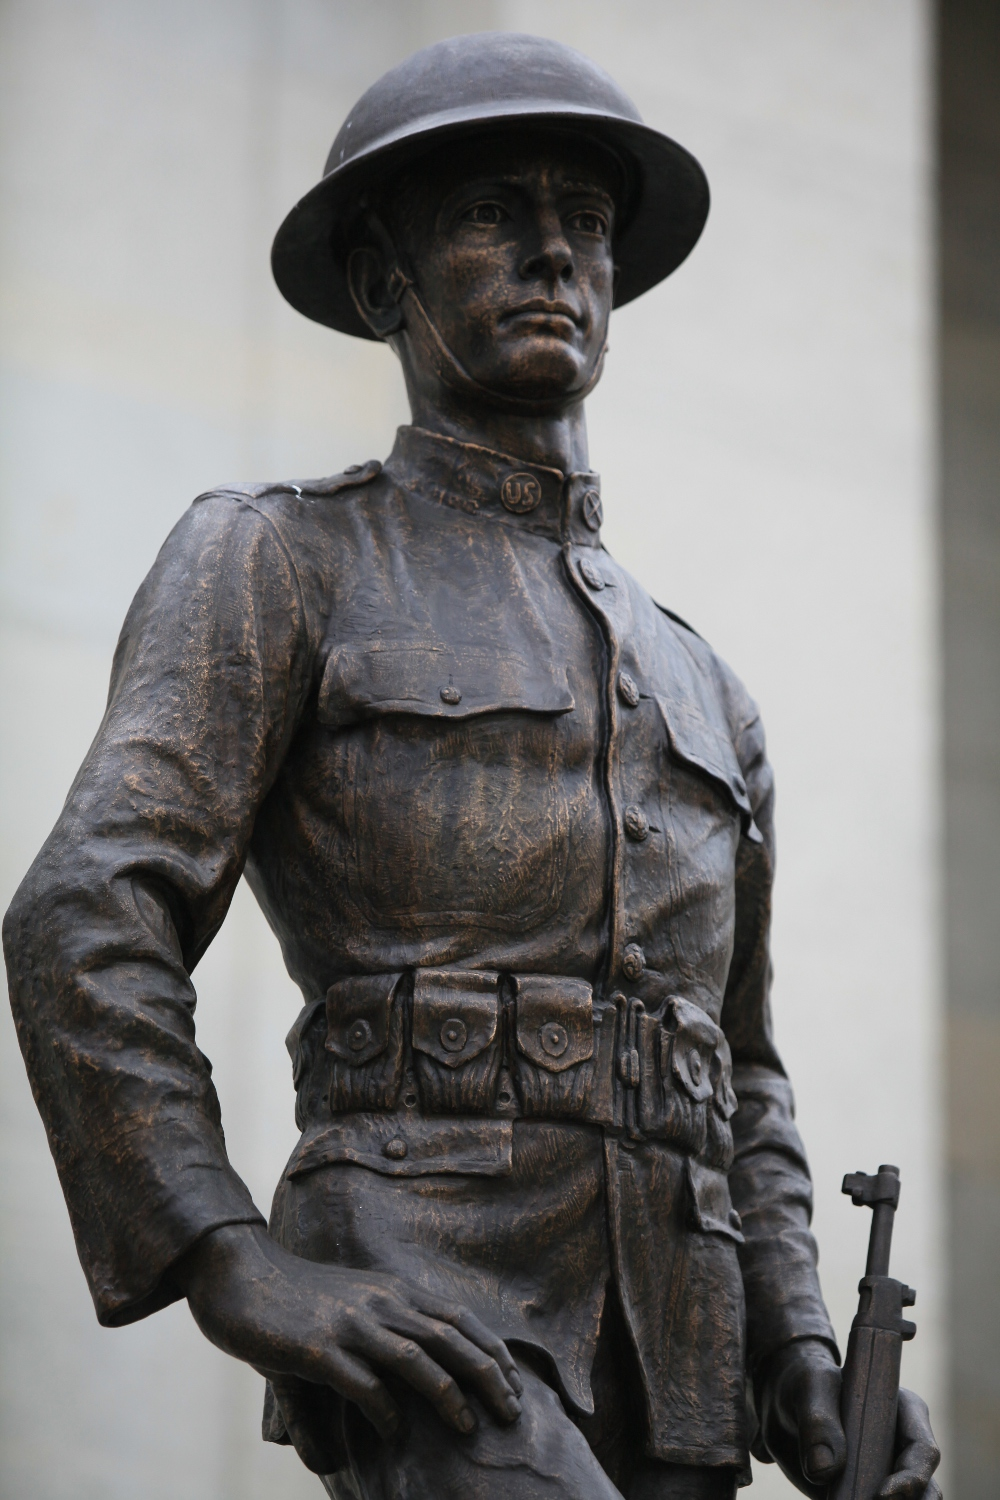 Stand Tall, Soldier, Statue, Vintage, War, HQ Photo